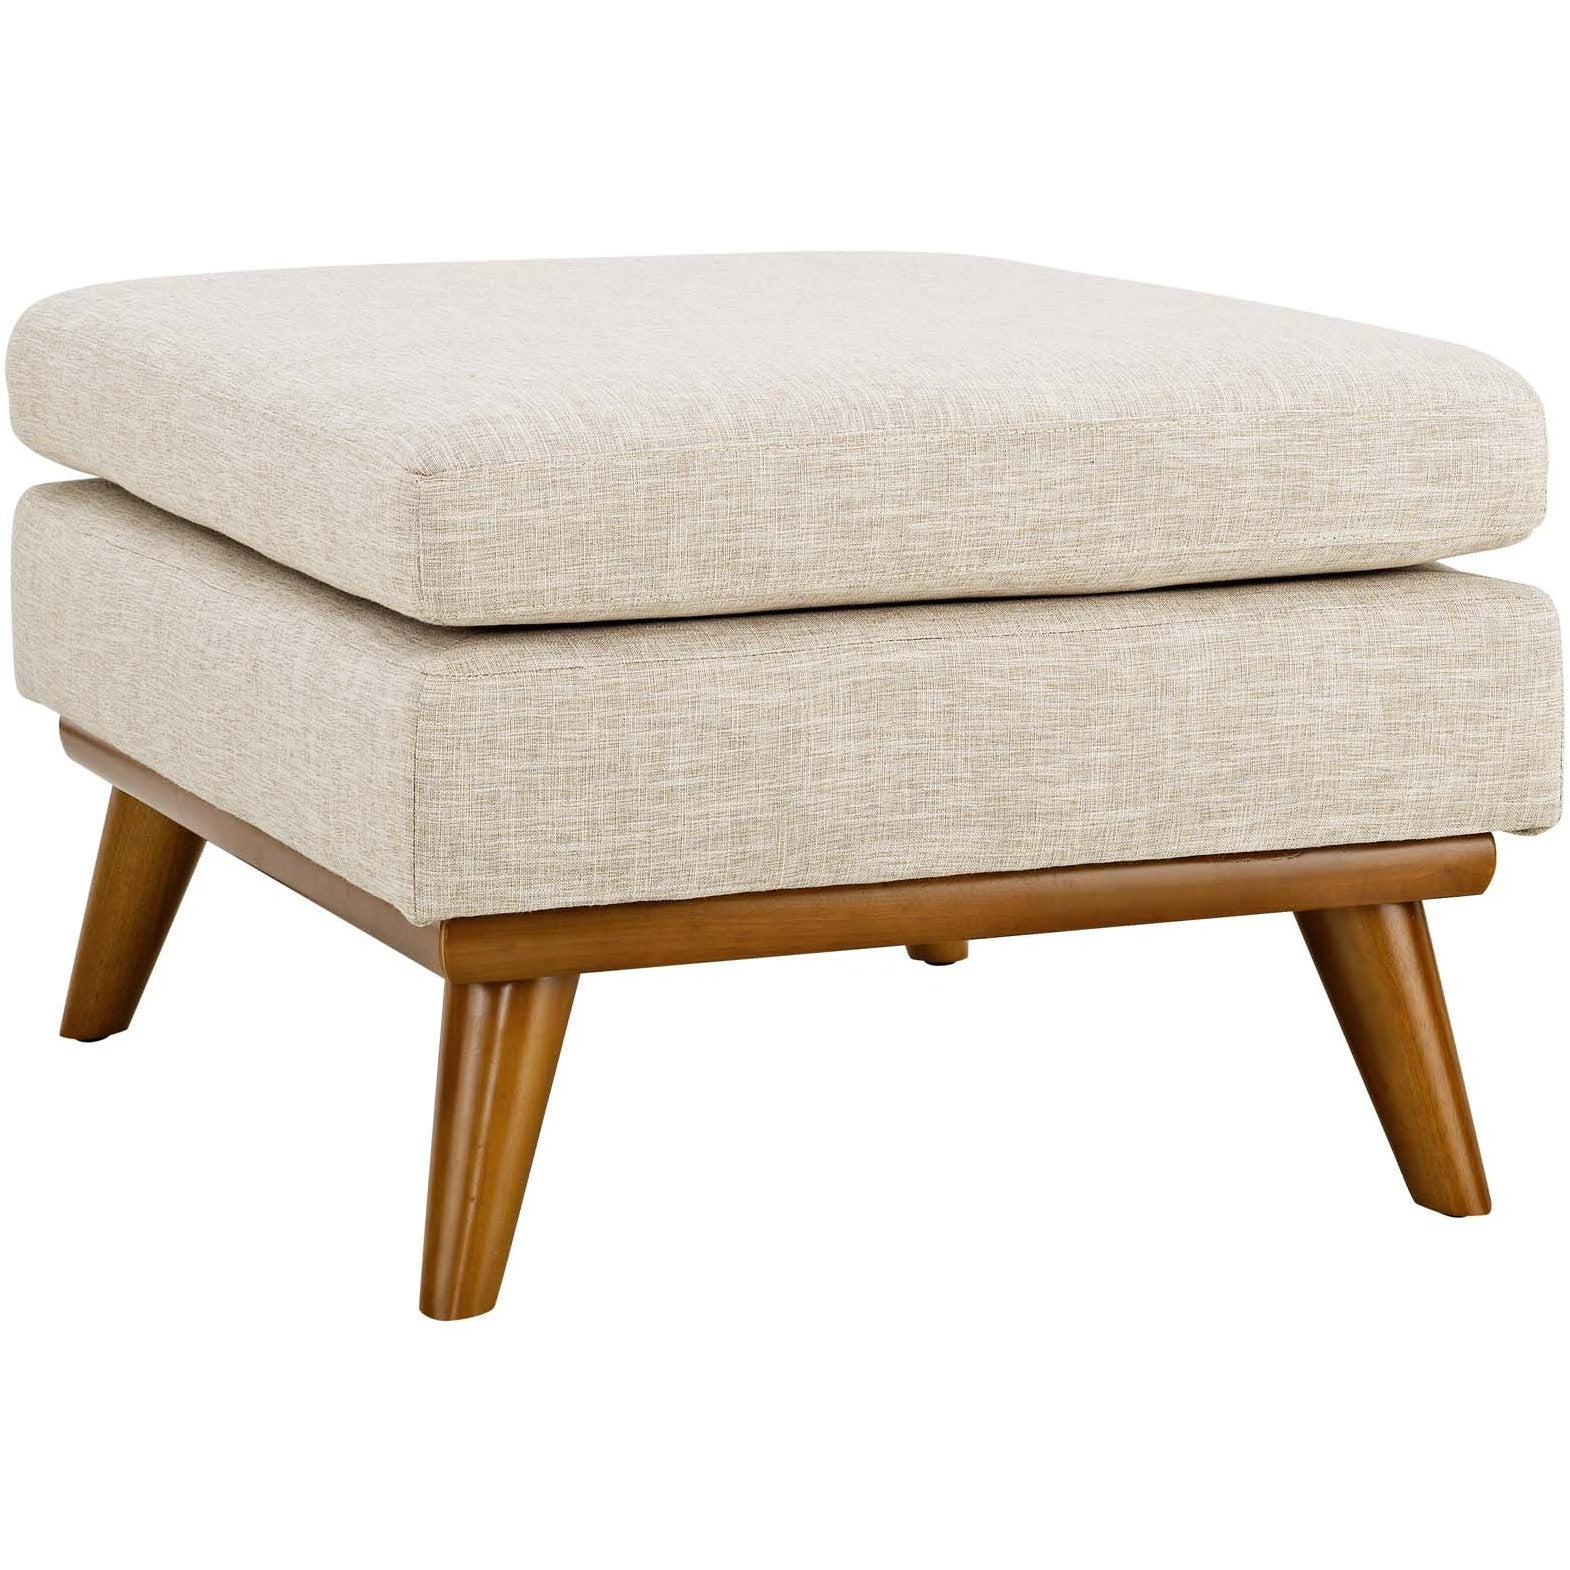 Engage Upholstered Fabric Ottoman - Beige